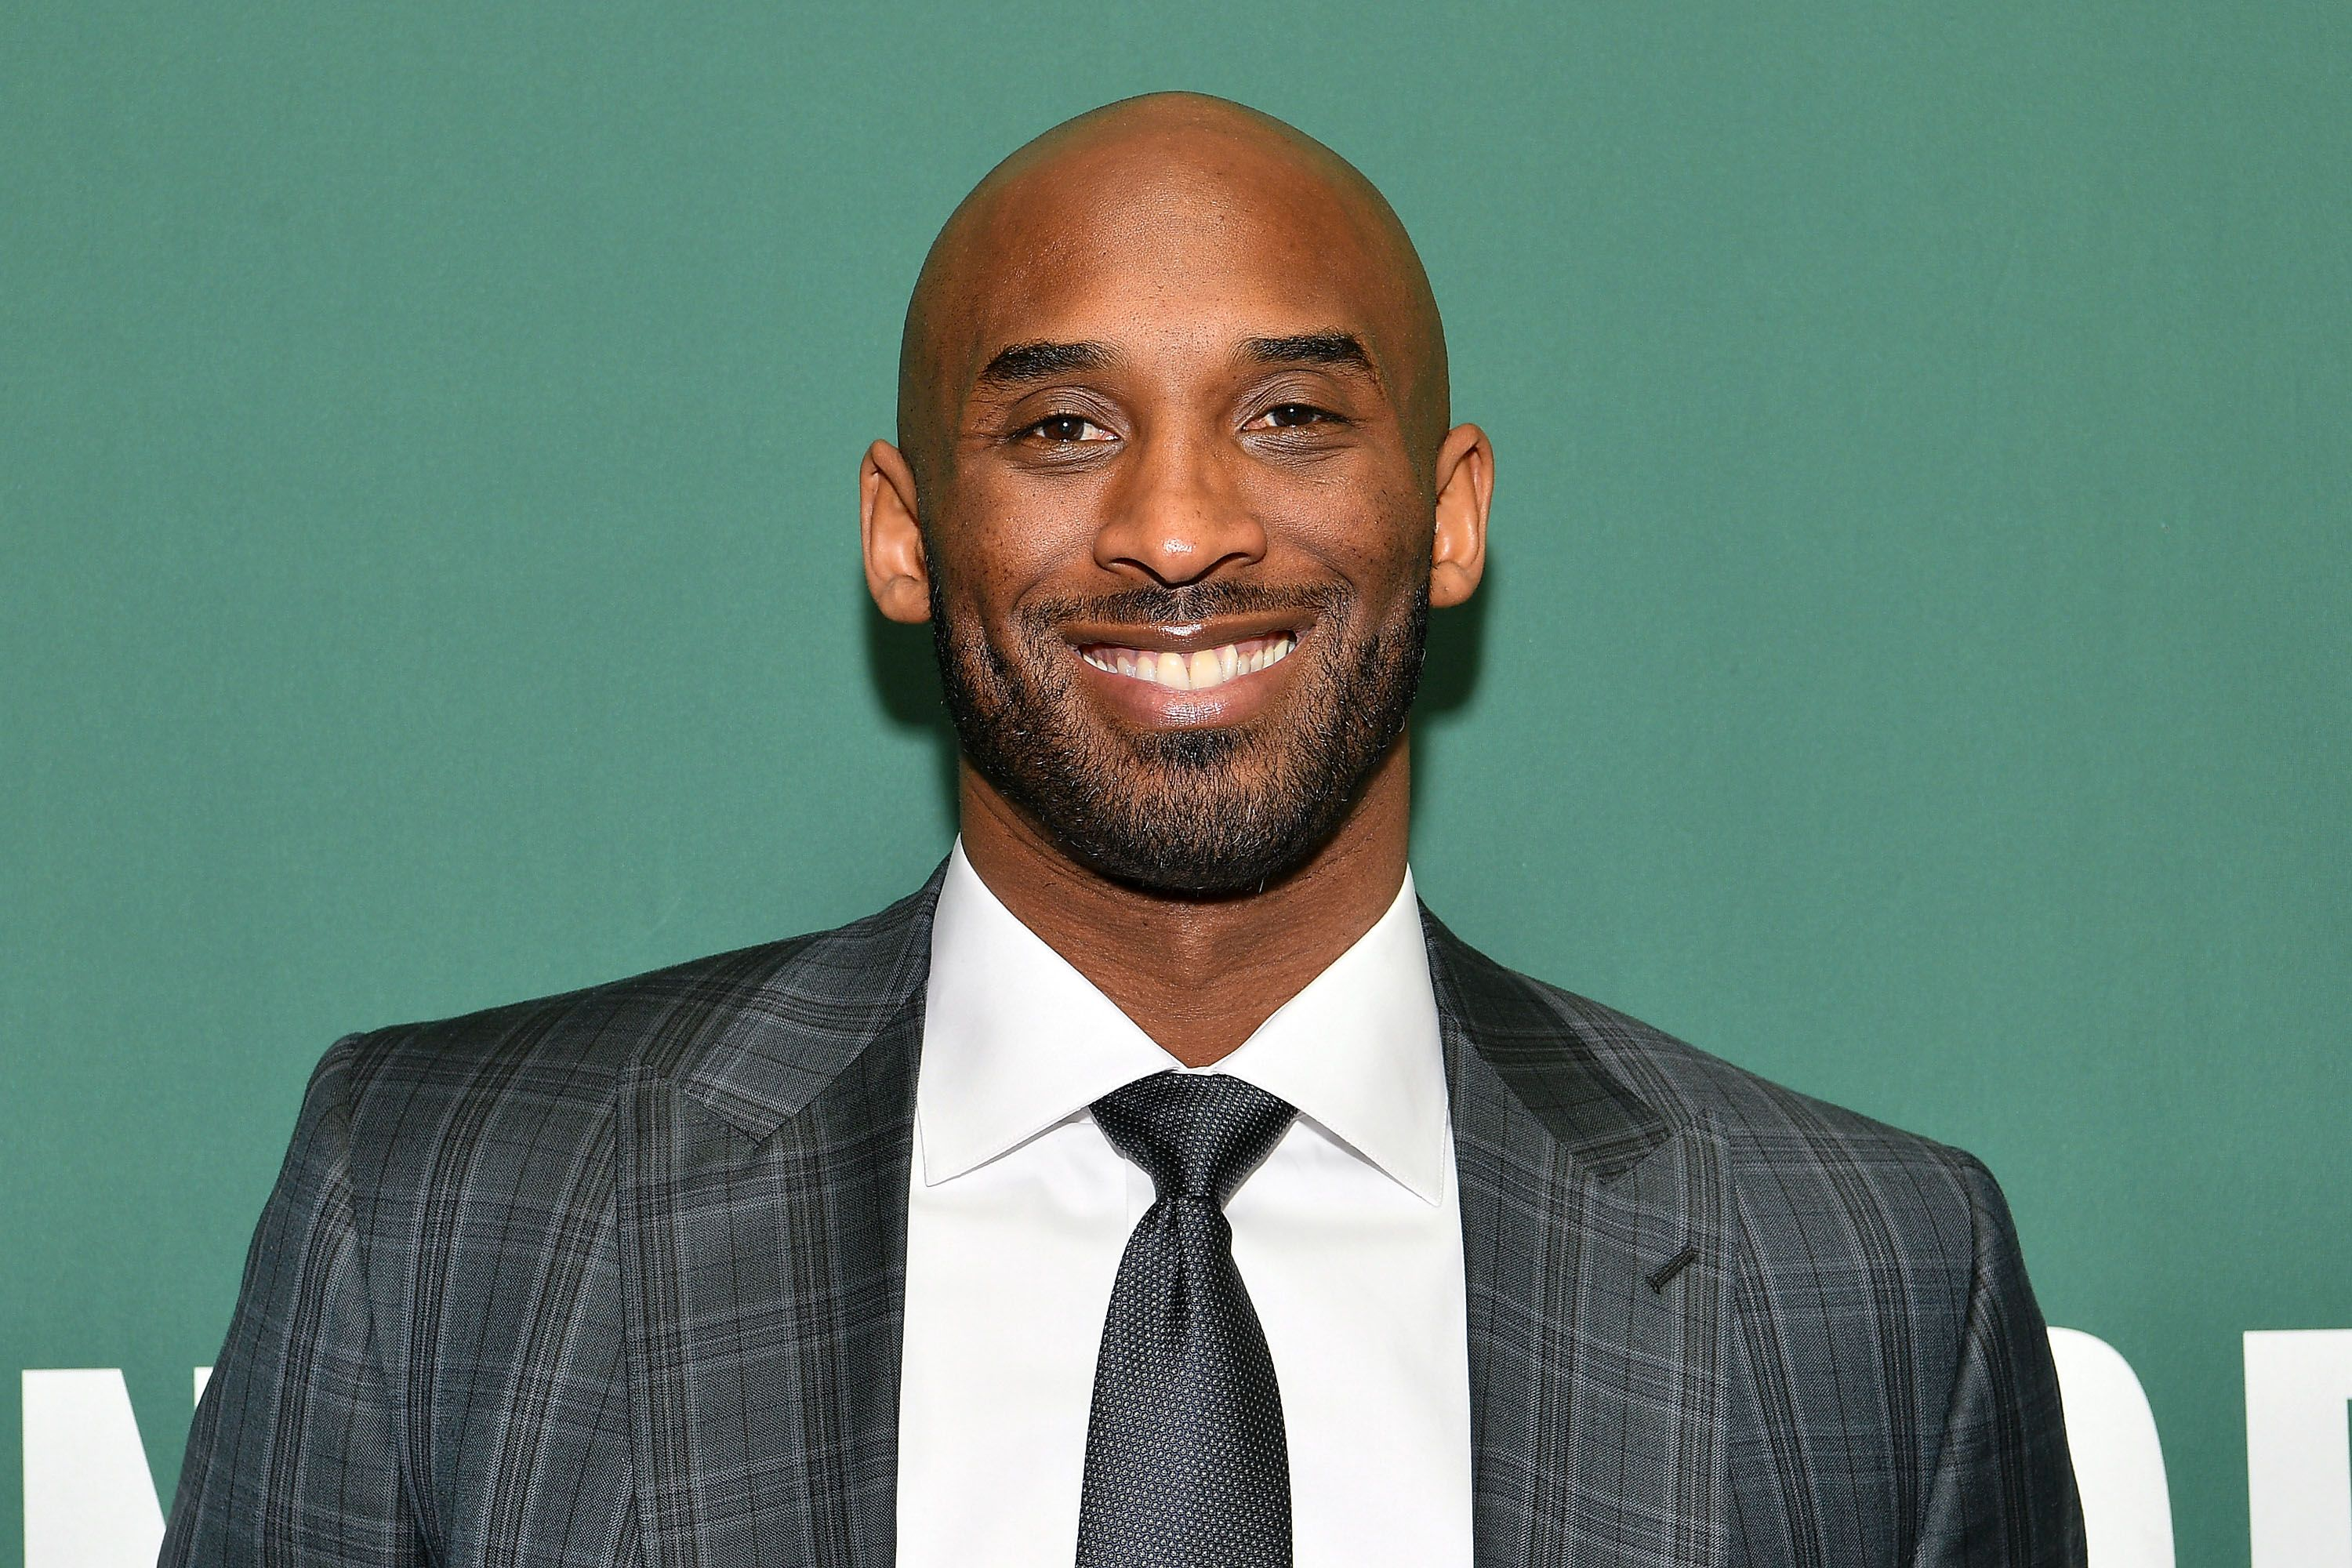 Sports Legend Kobe Bryant Has Reportedly Died at Age 41